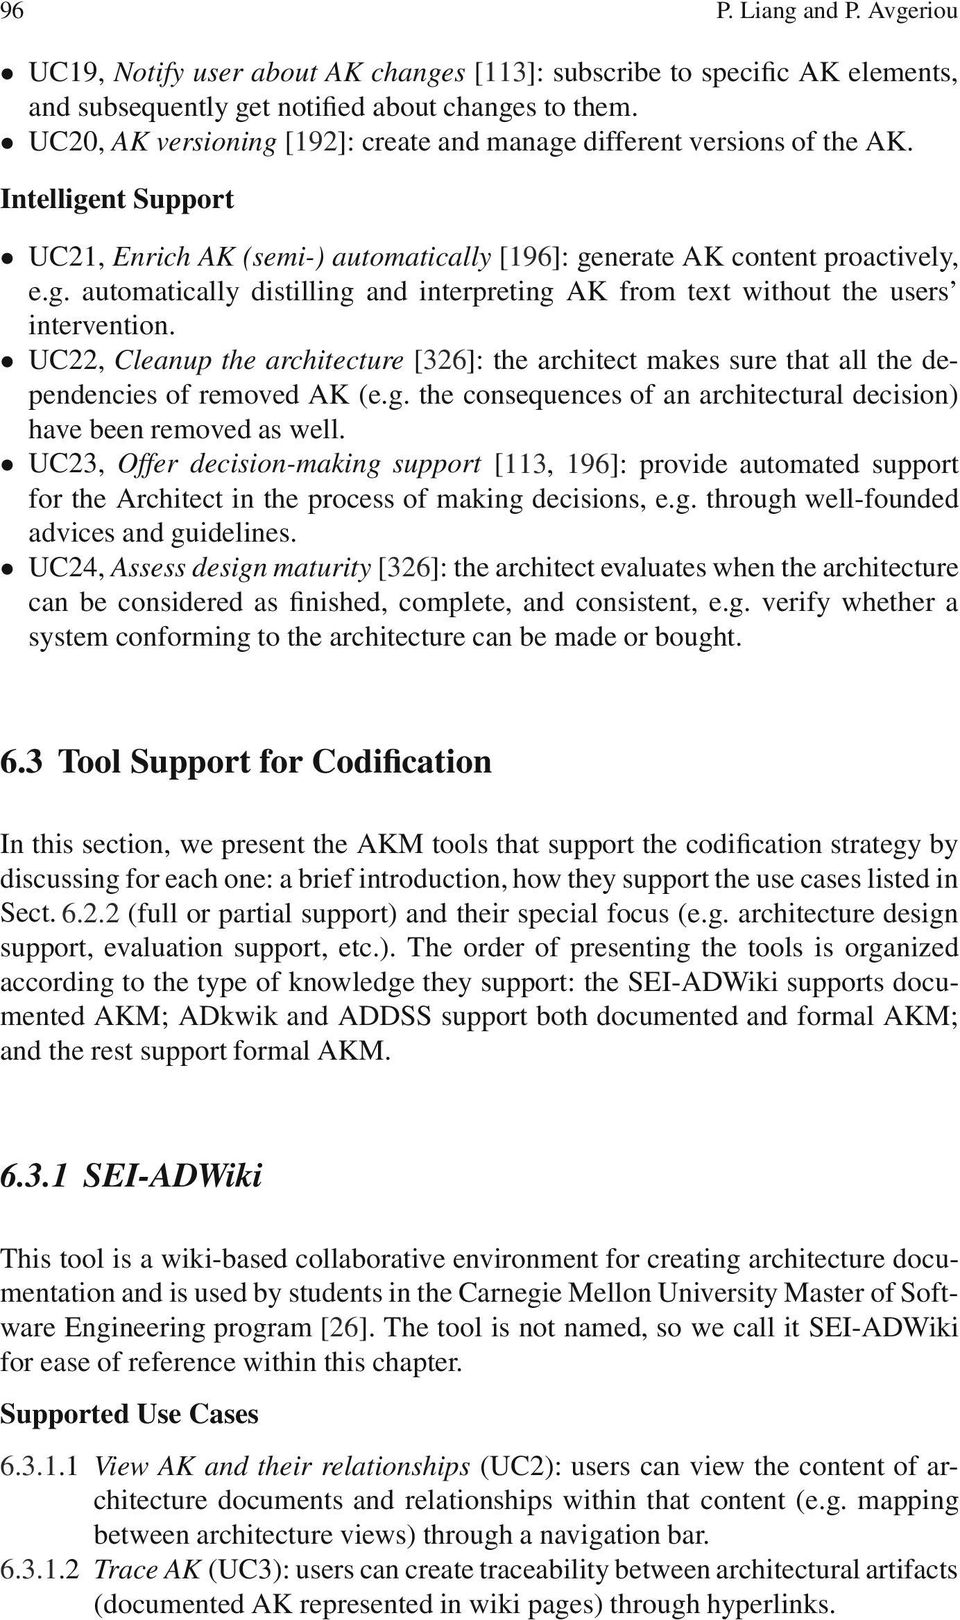 UC22, Cleanup the architecture [326]: the architect makes sure that all the dependencies of removed AK (e.g. the consequences of an architectural decision) have been removed as well.